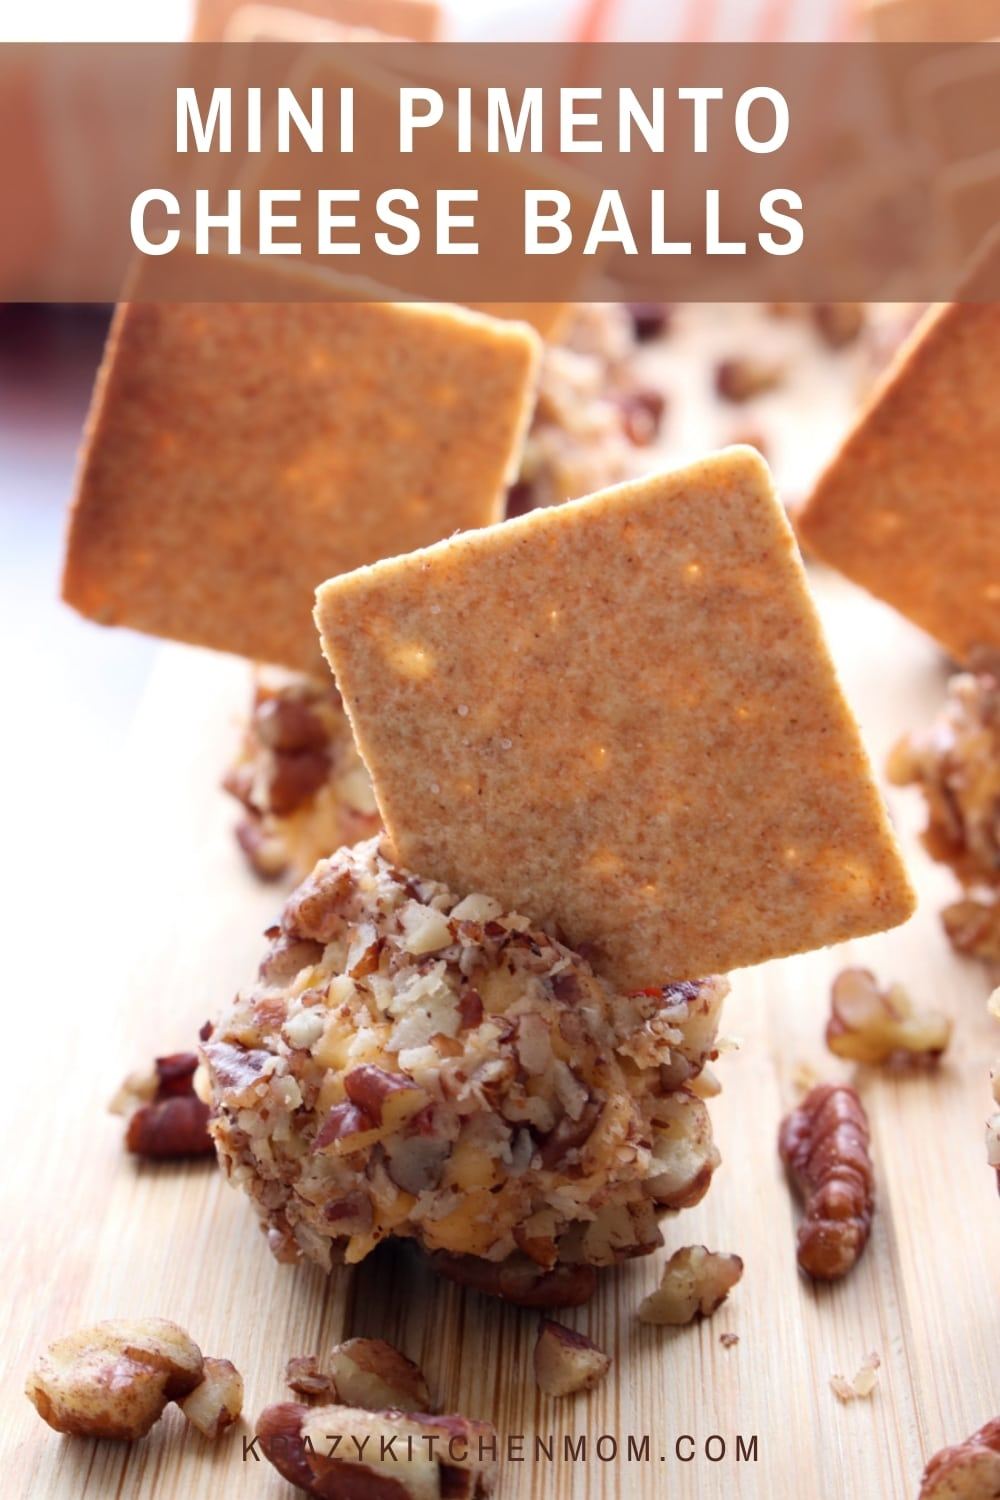 If you like pimento cheese spread, then you are going to LOVE these little bites of pimento cheese rolled in crunchy pecans. Put a taste of the south in your mouth! via @krazykitchenmom